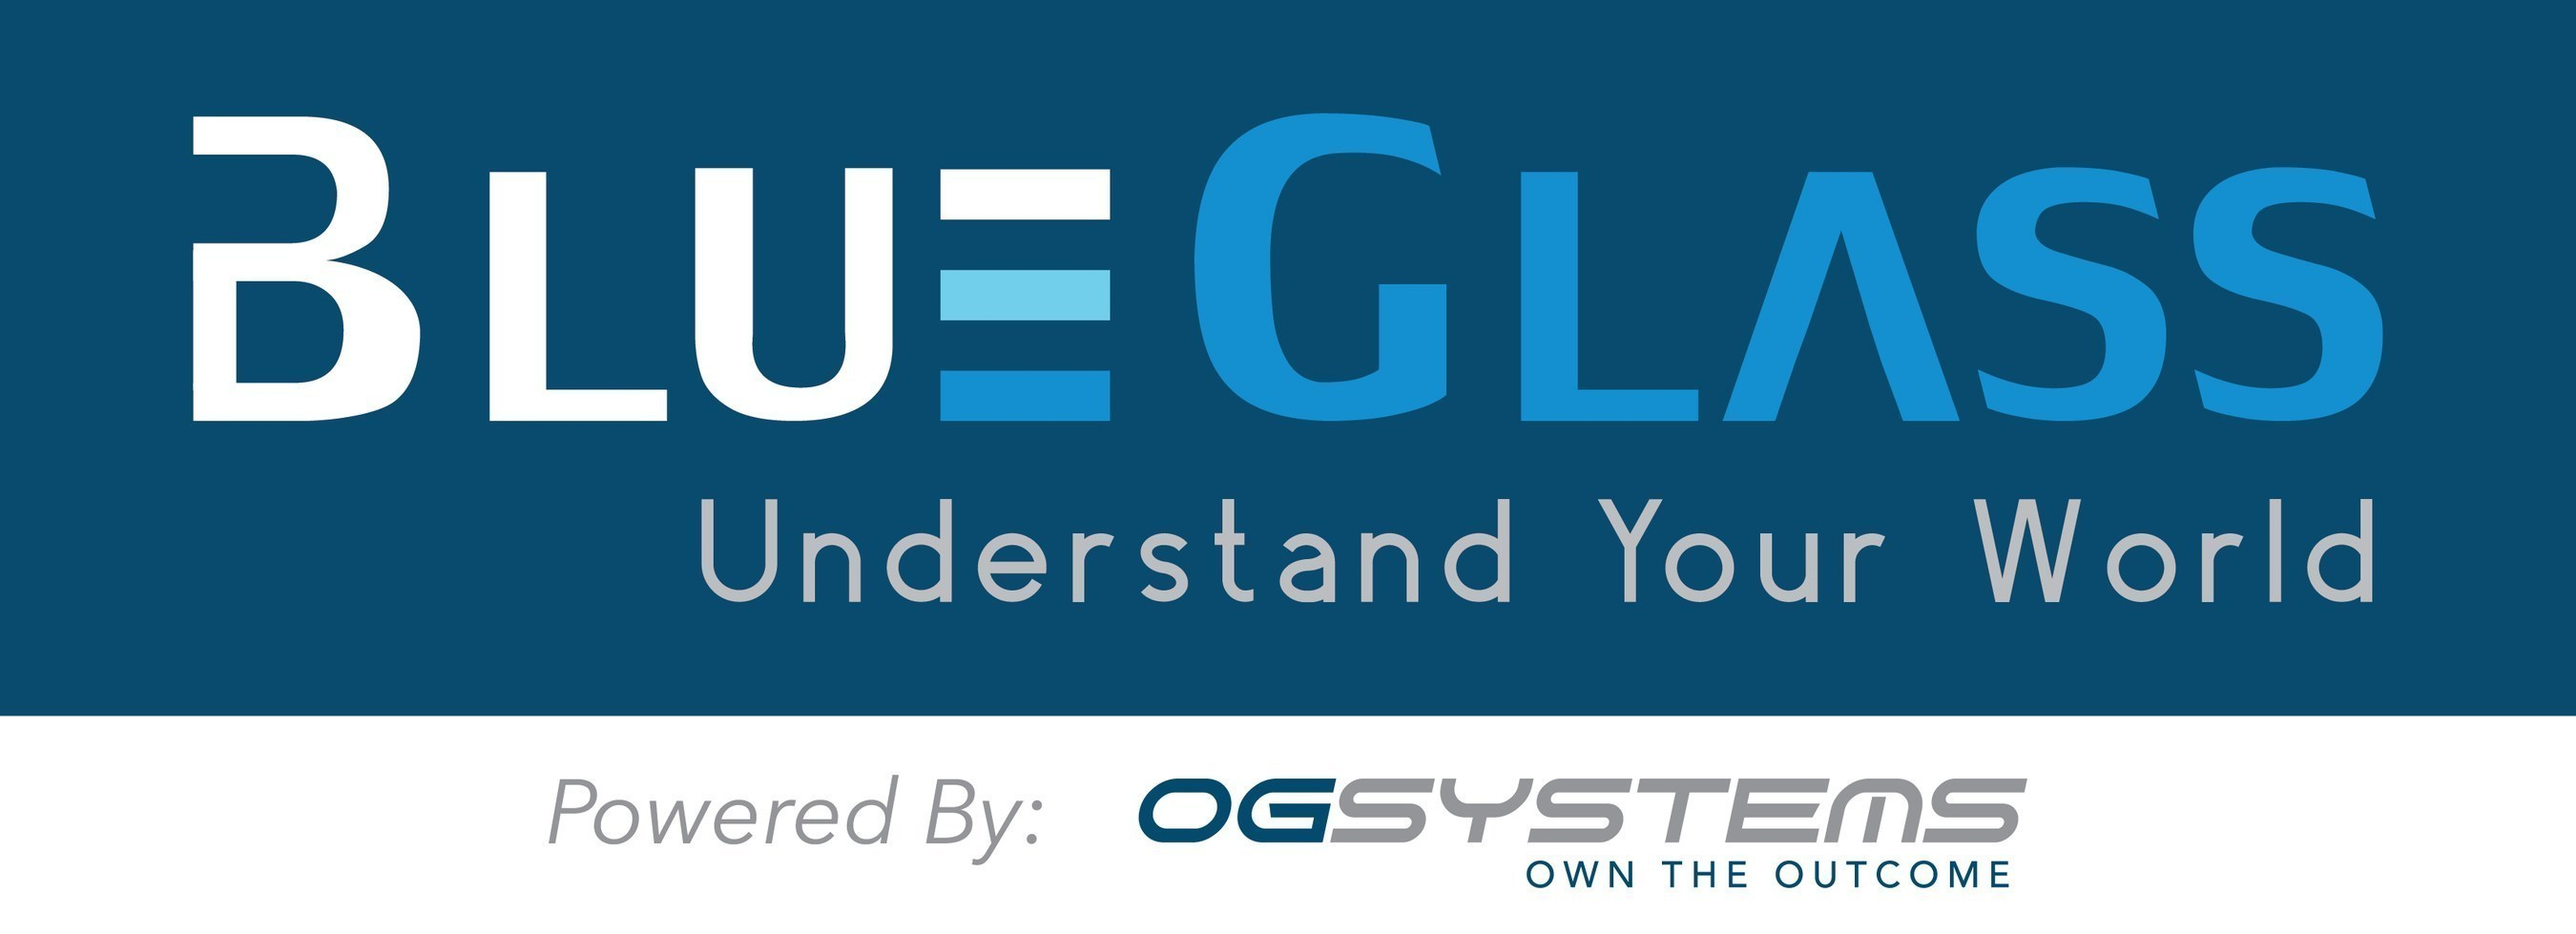 OGSystems Announces First Strategic Partnership in the BlueGlass Platform